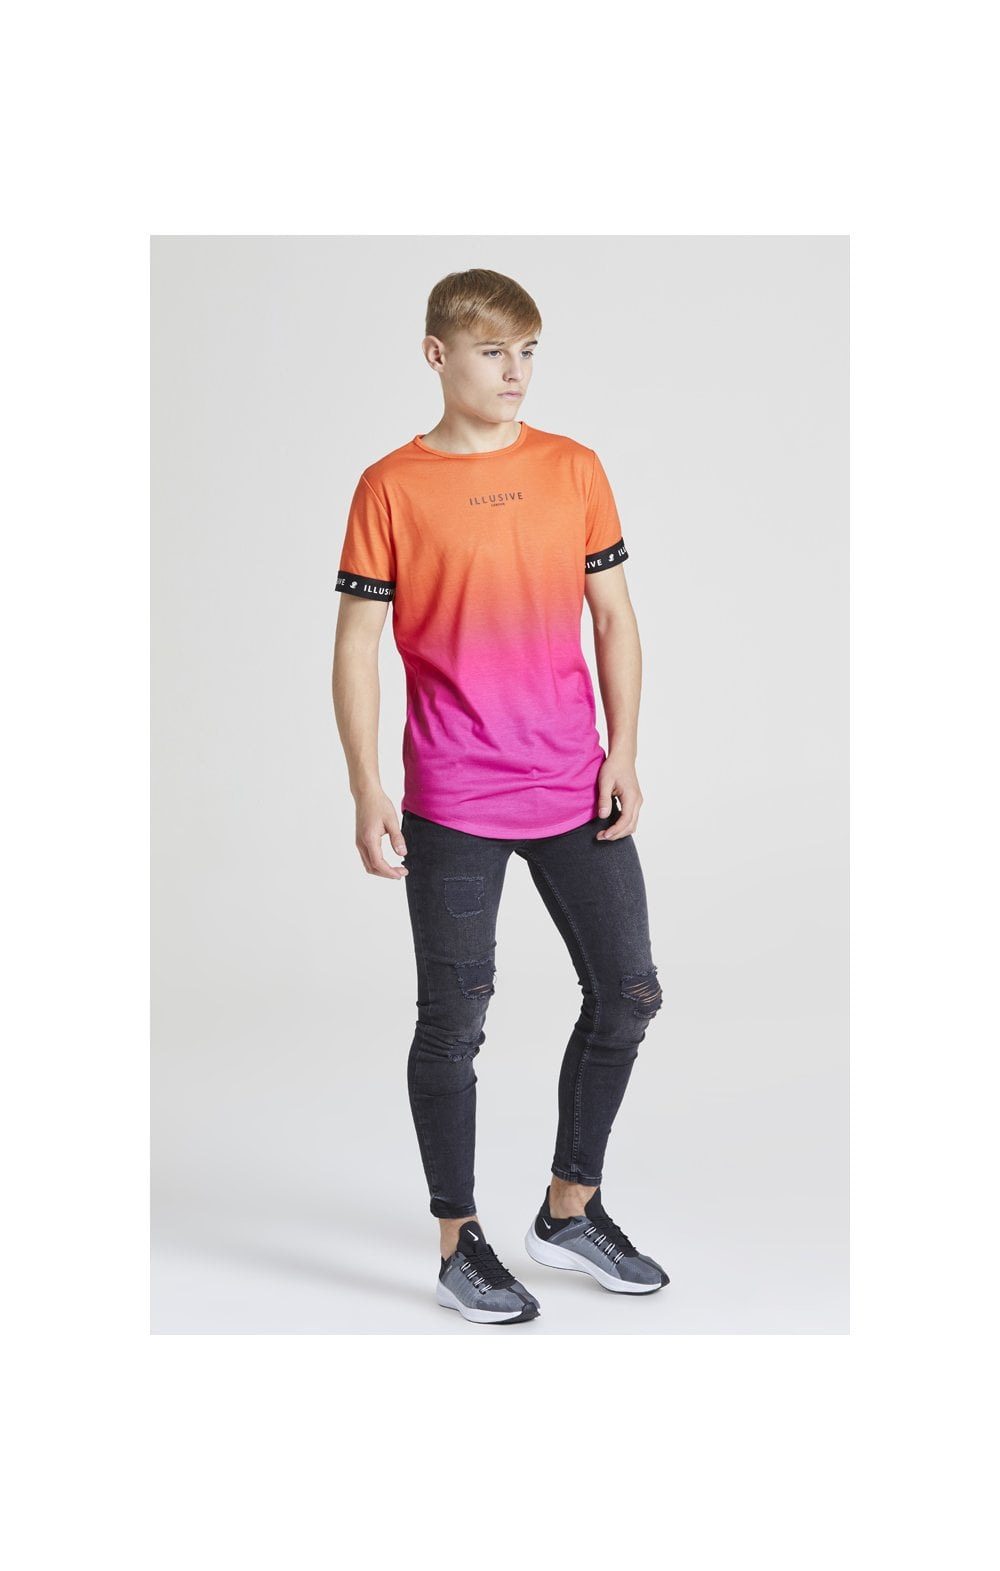 Load image into Gallery viewer, Illusive London Fade Tech Tee - Orange & Pink (2)